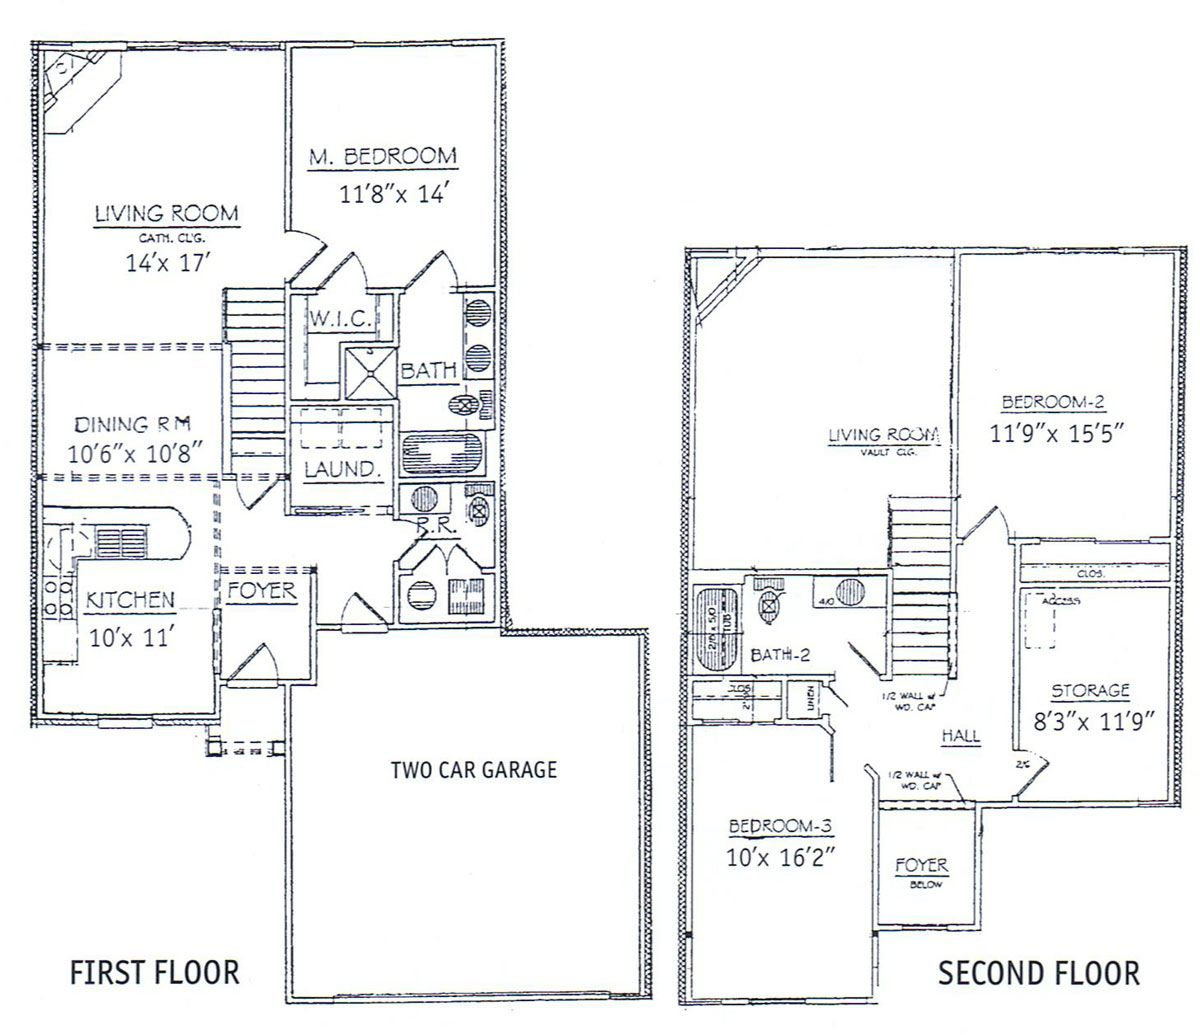 3 bedrooms floor plans 2 story bdrm basement the two for 2 story building plans